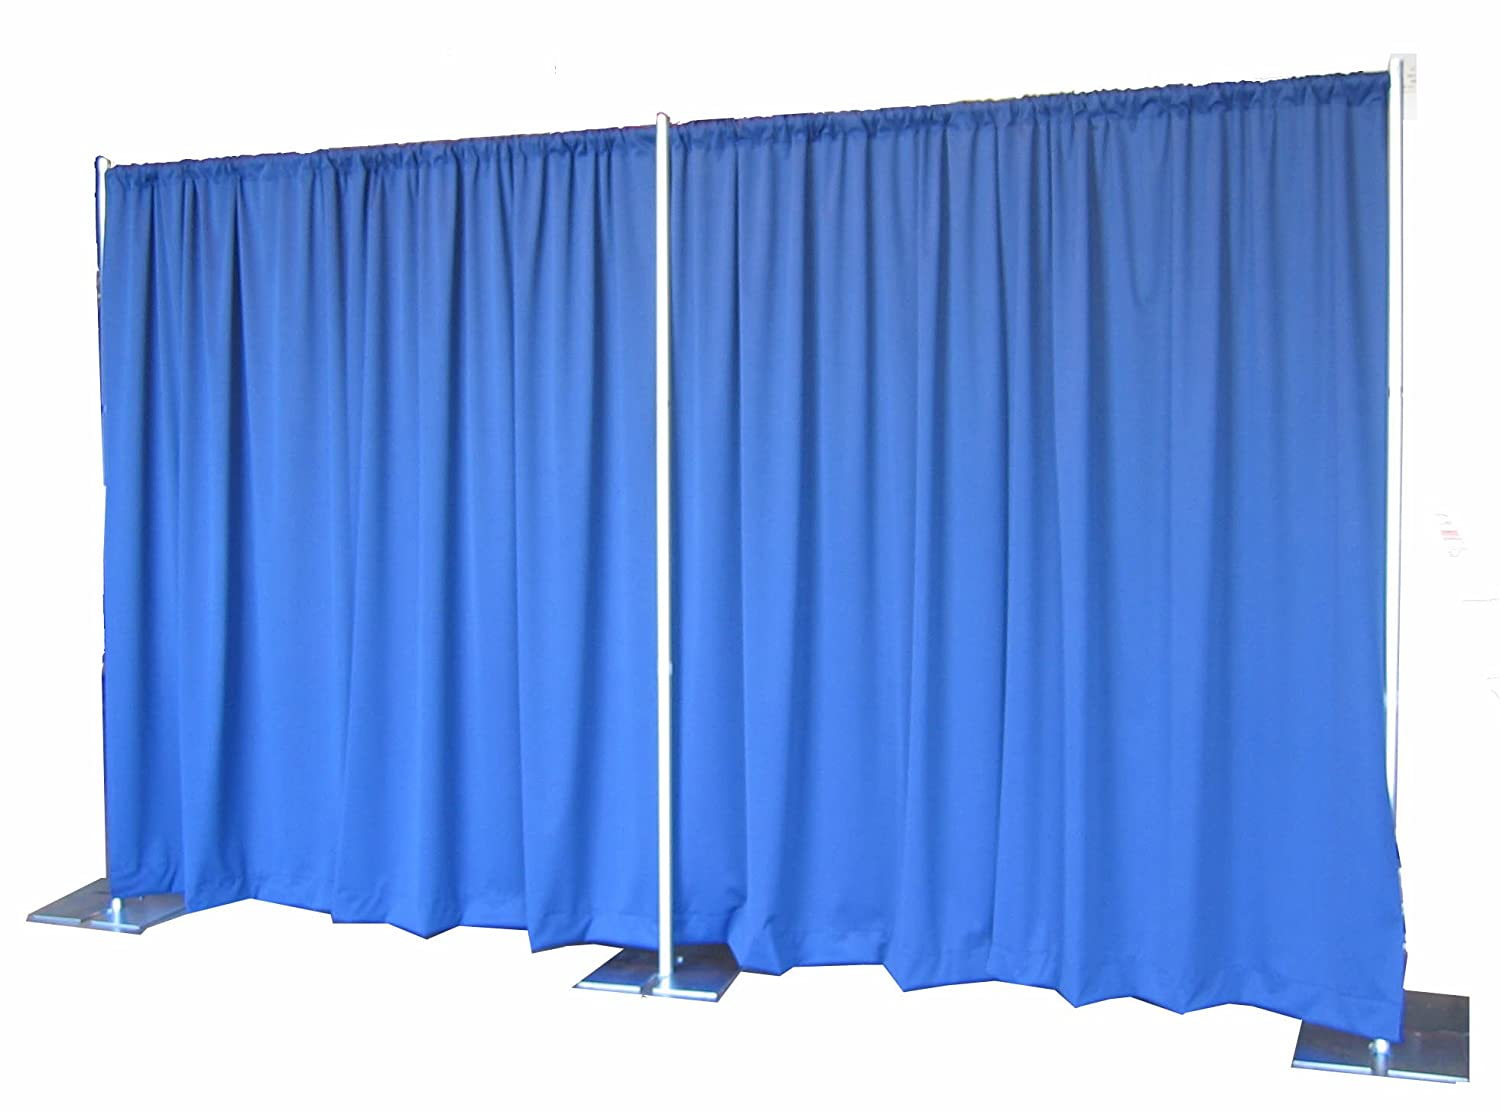 Bl blue stage curtains background - Amazon Com Pipe And Drape Backdrop 8ft X 20ft No Drapes Photo Studio Backgrounds Camera Photo